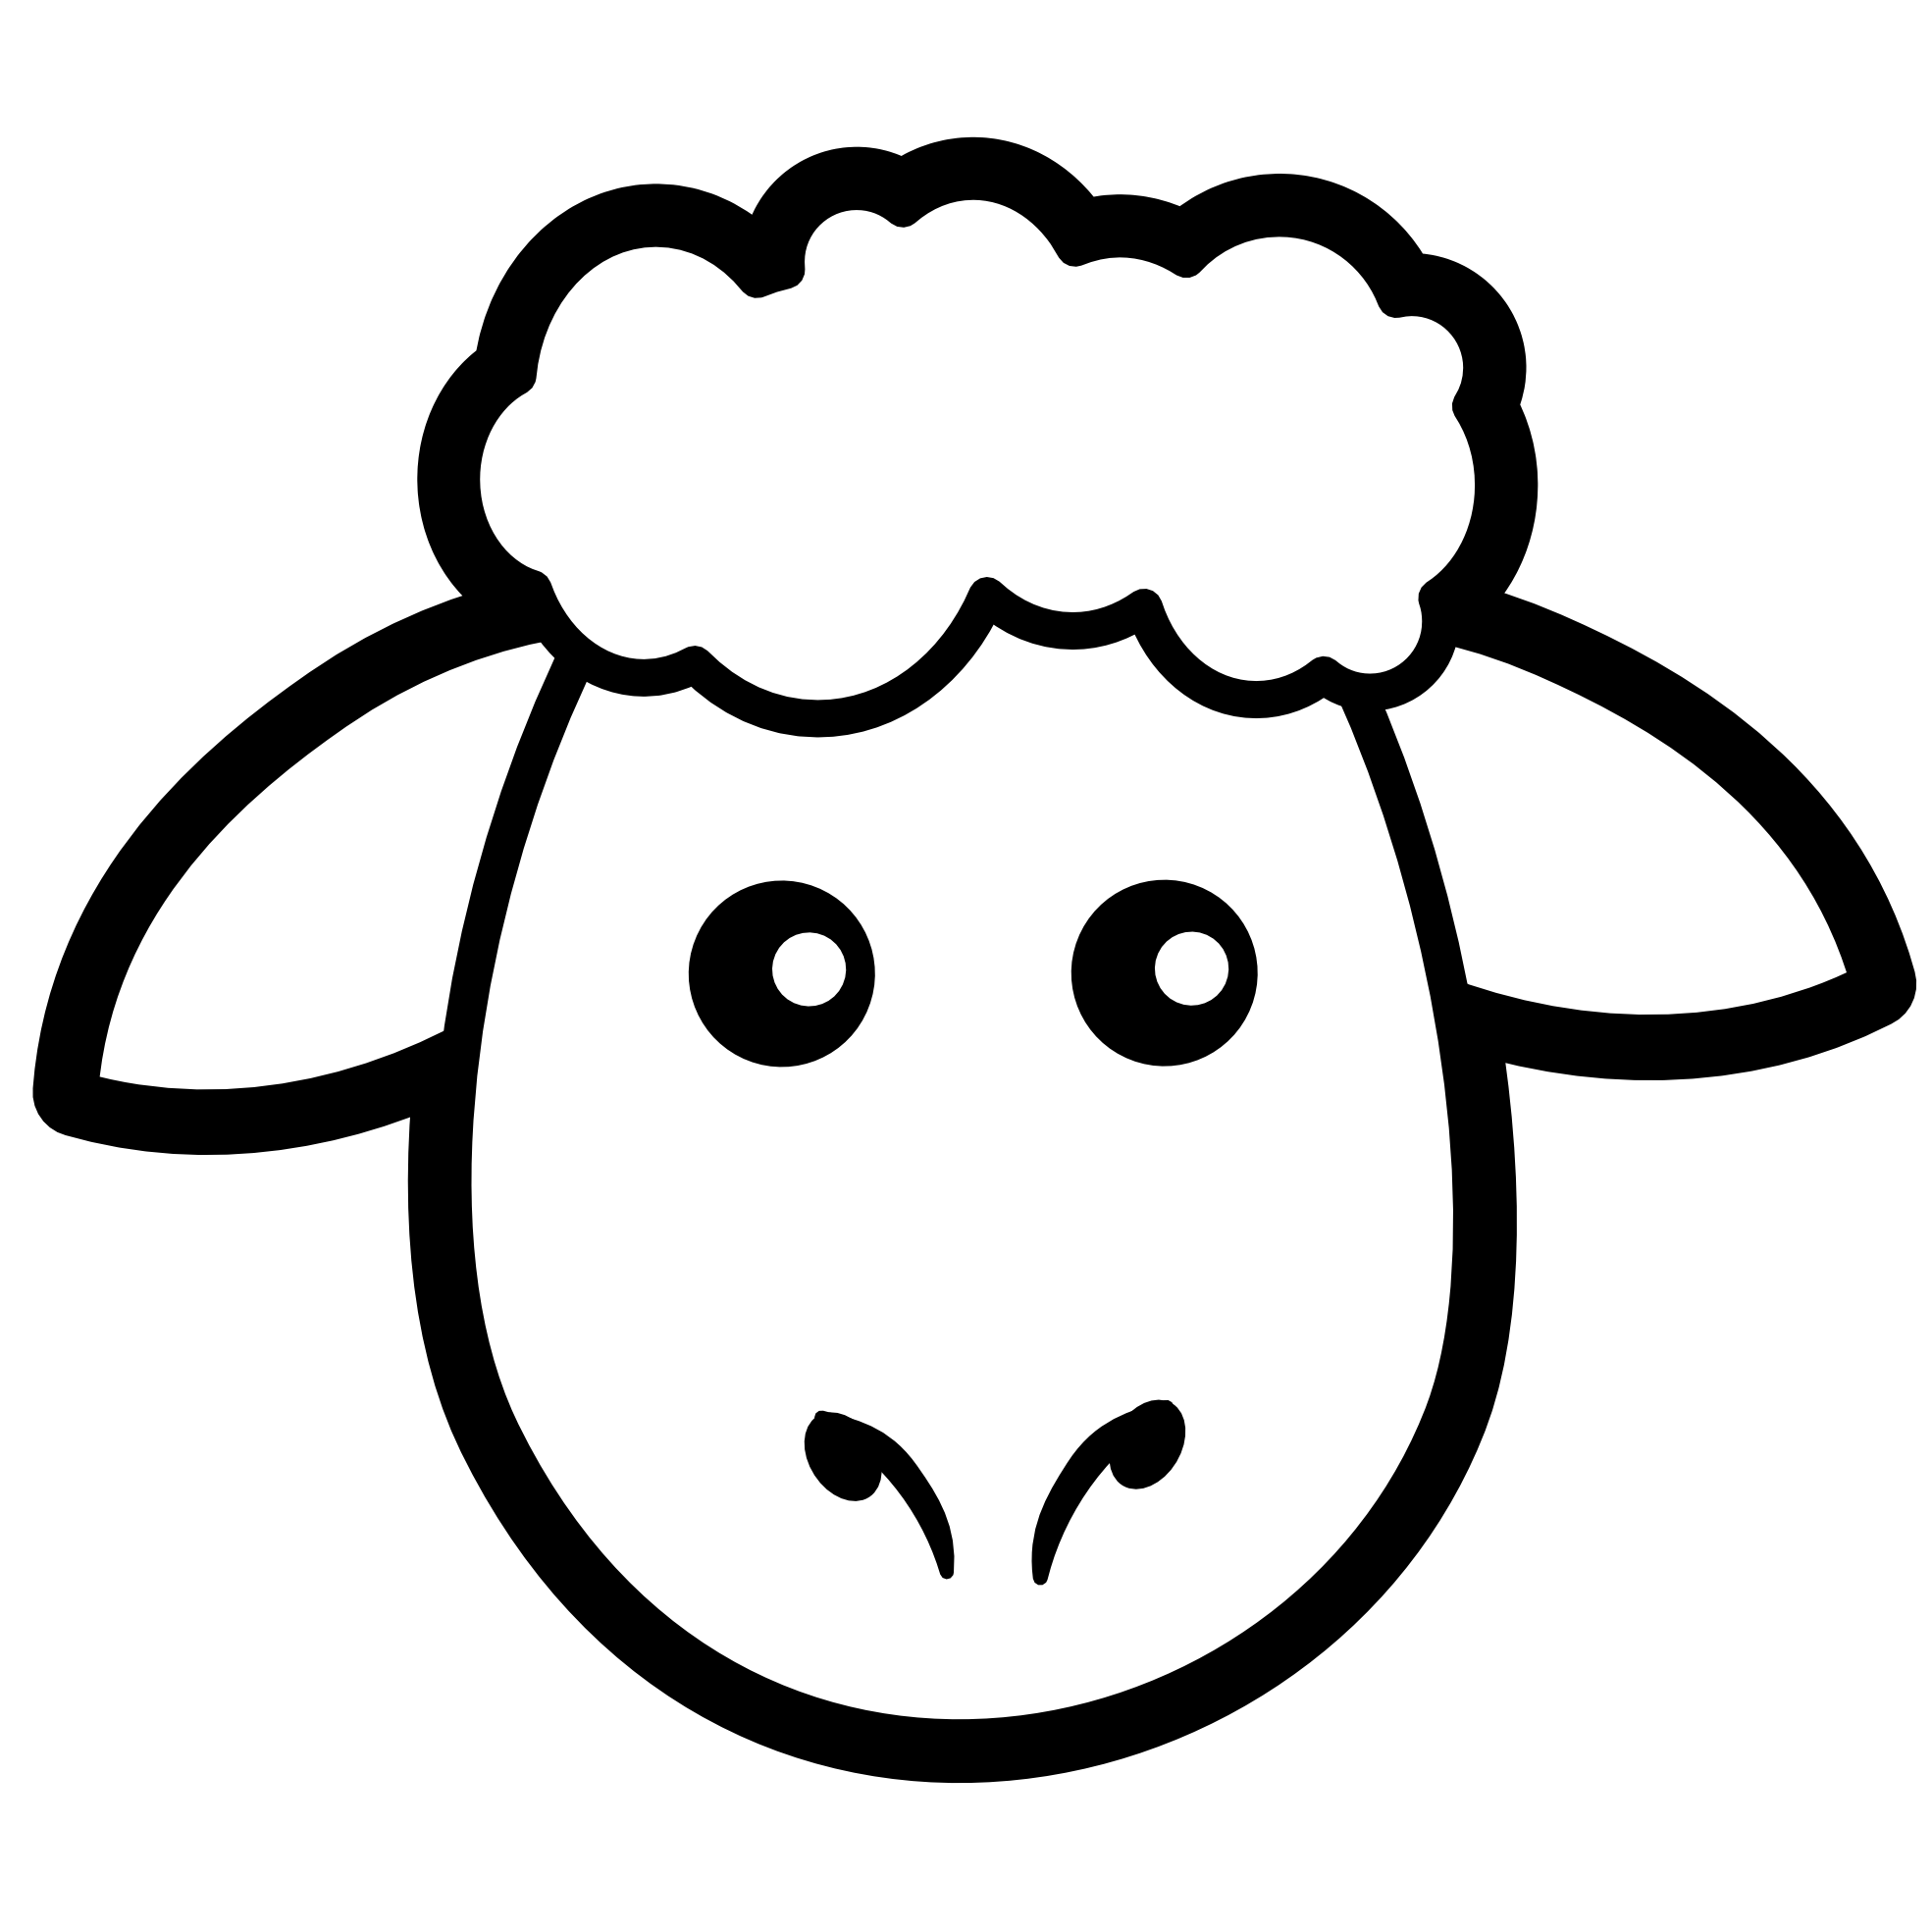 straight face clipart black and white | Stamp | Pinterest ... for Sheep Face Black And White  131fsj